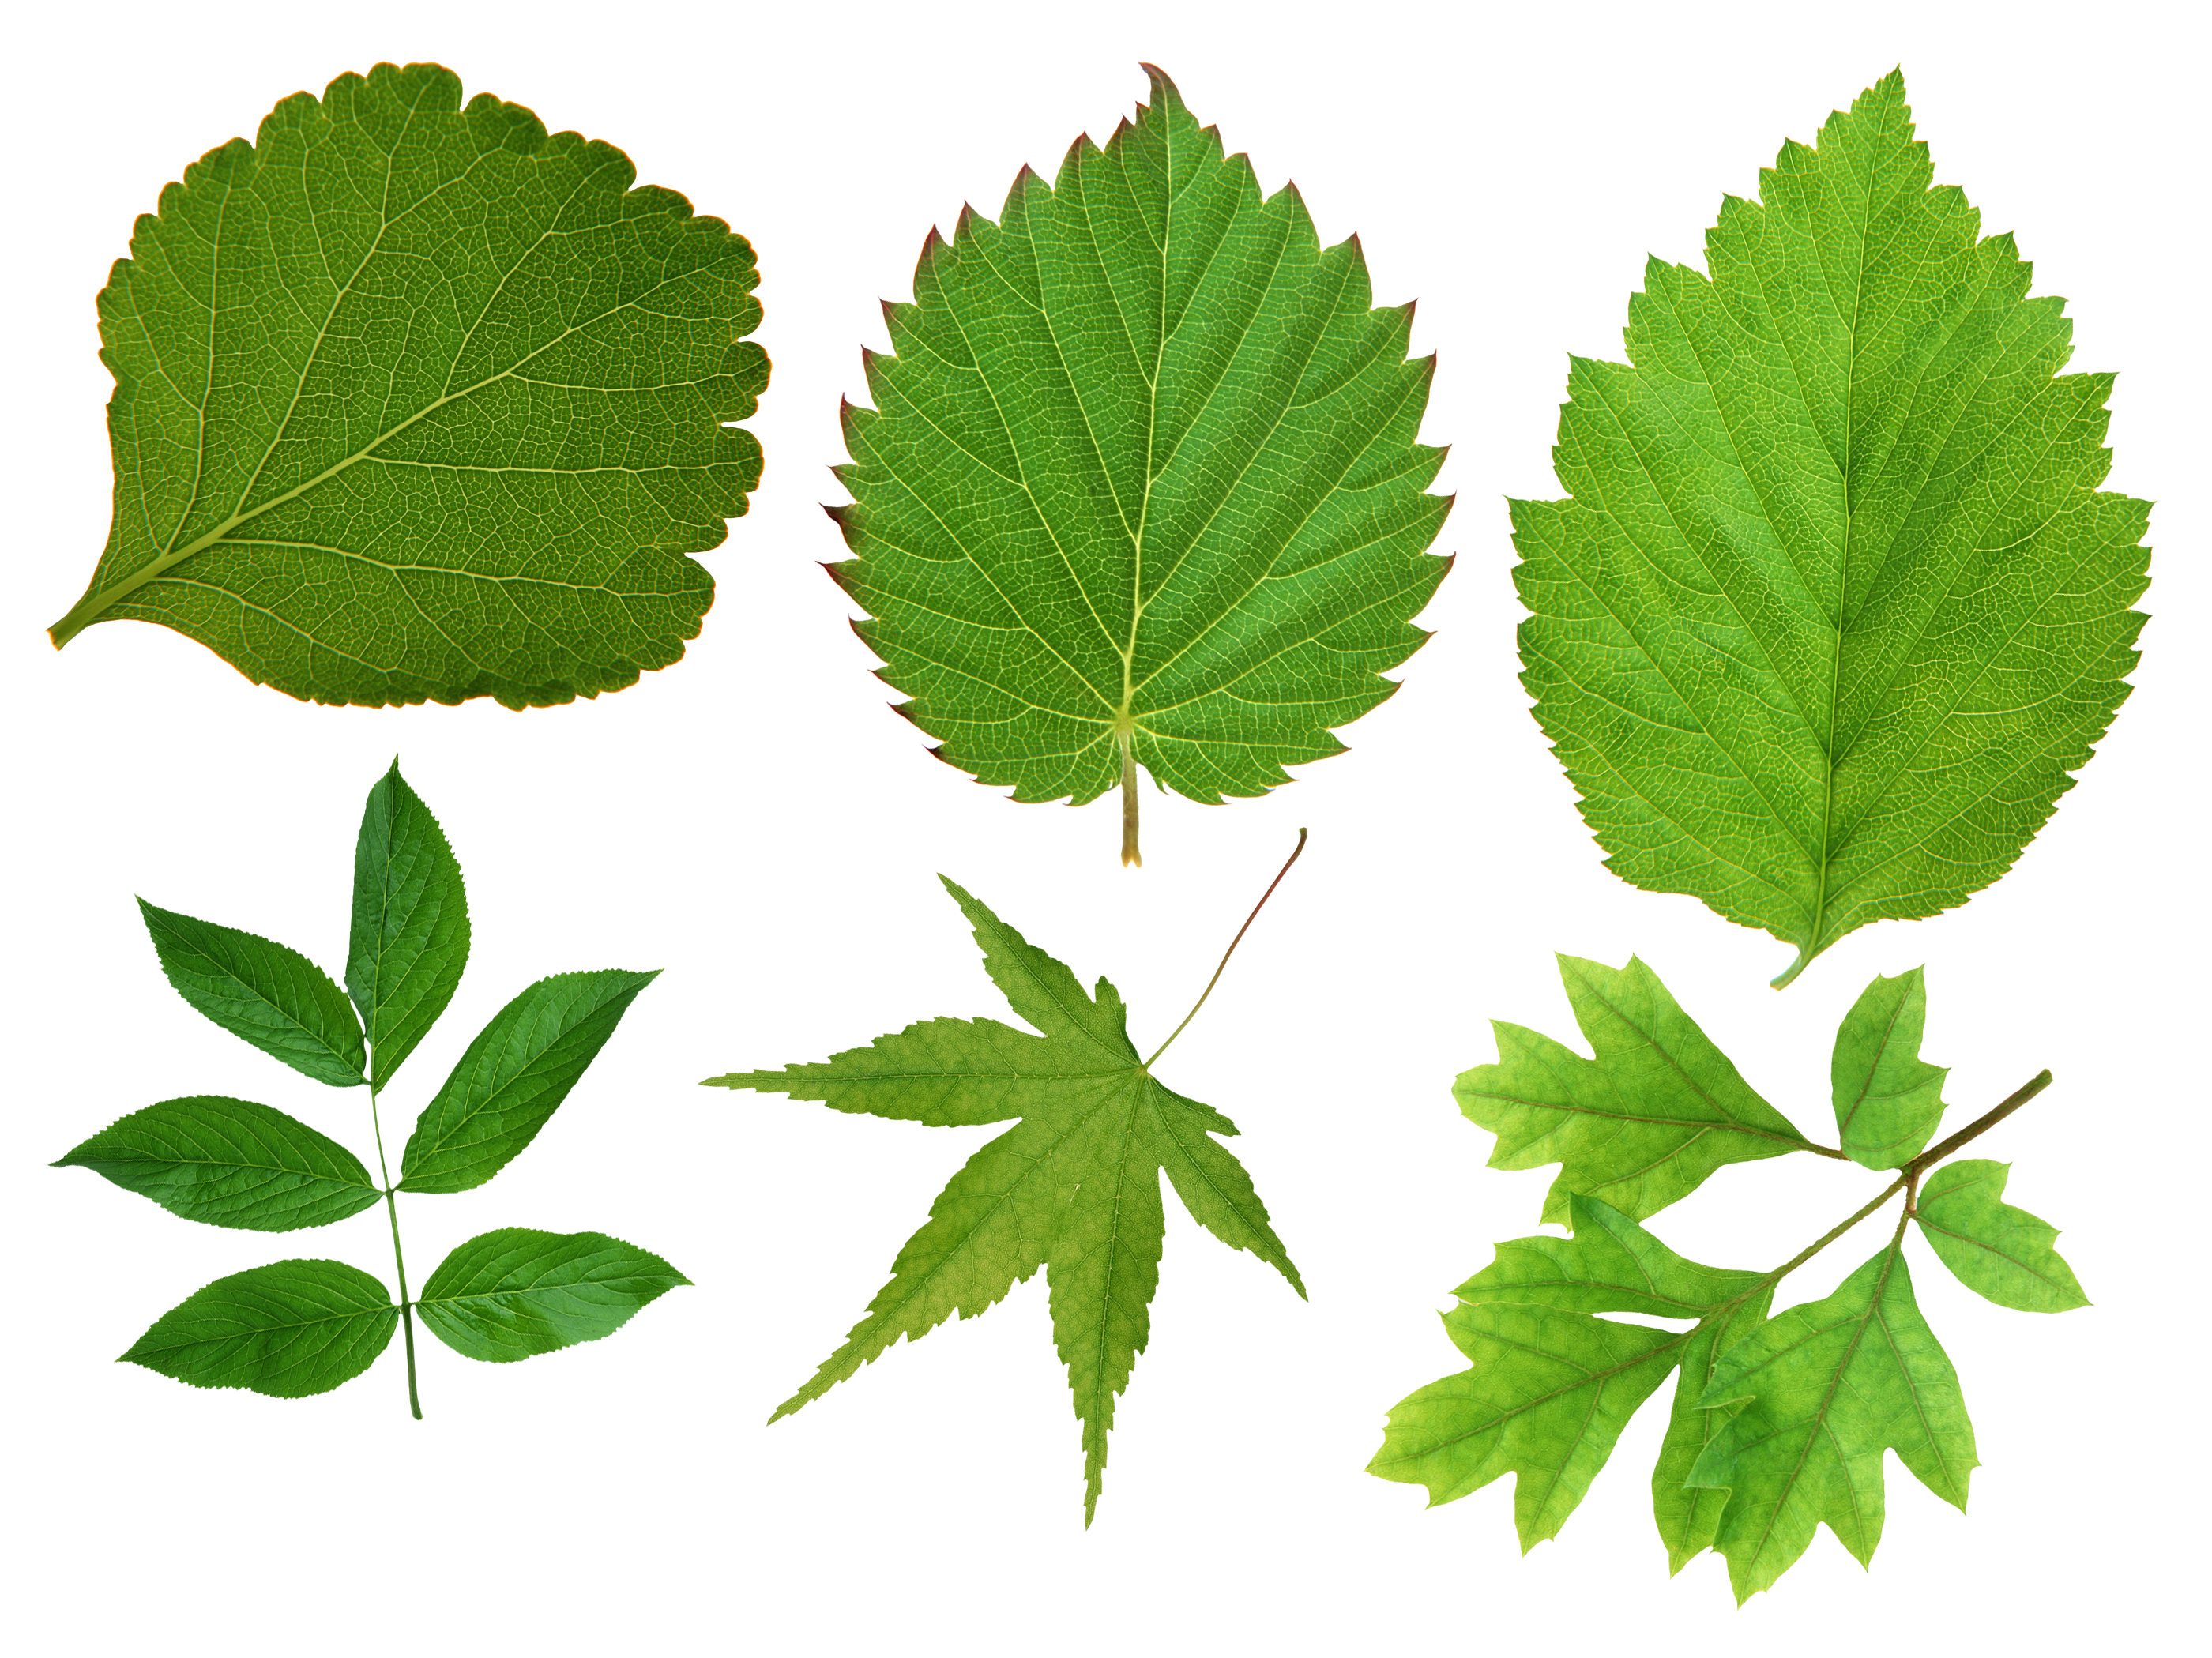 Although Leaves Can Be Seen In Many Different Shapes Sizes And Textures Typically A Leaf Is A Thin Dorsiventrally Flattened Organ Borne Above Ground And